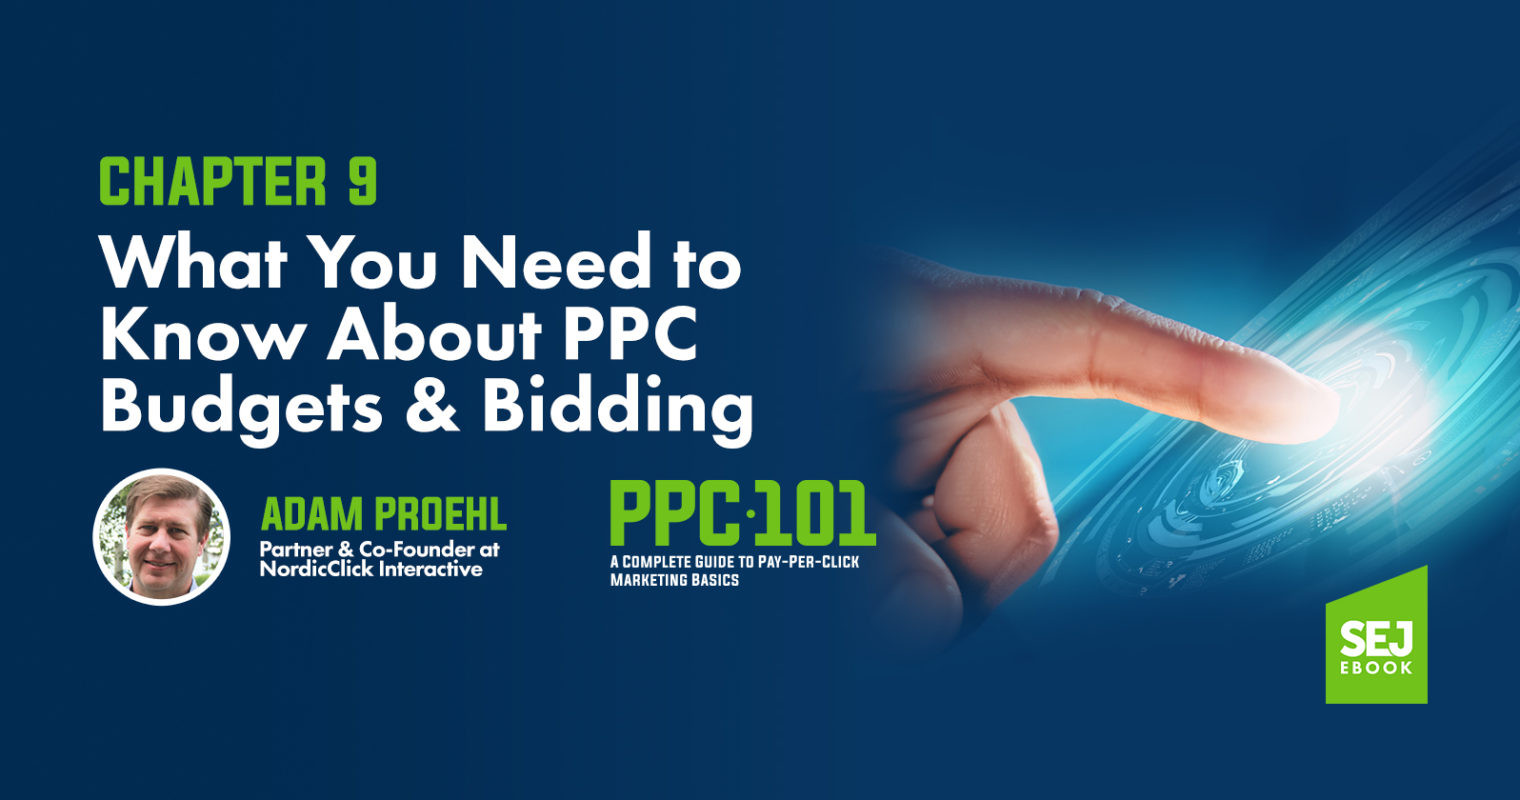 What You Need to Know About PPC Budgets & Bidding